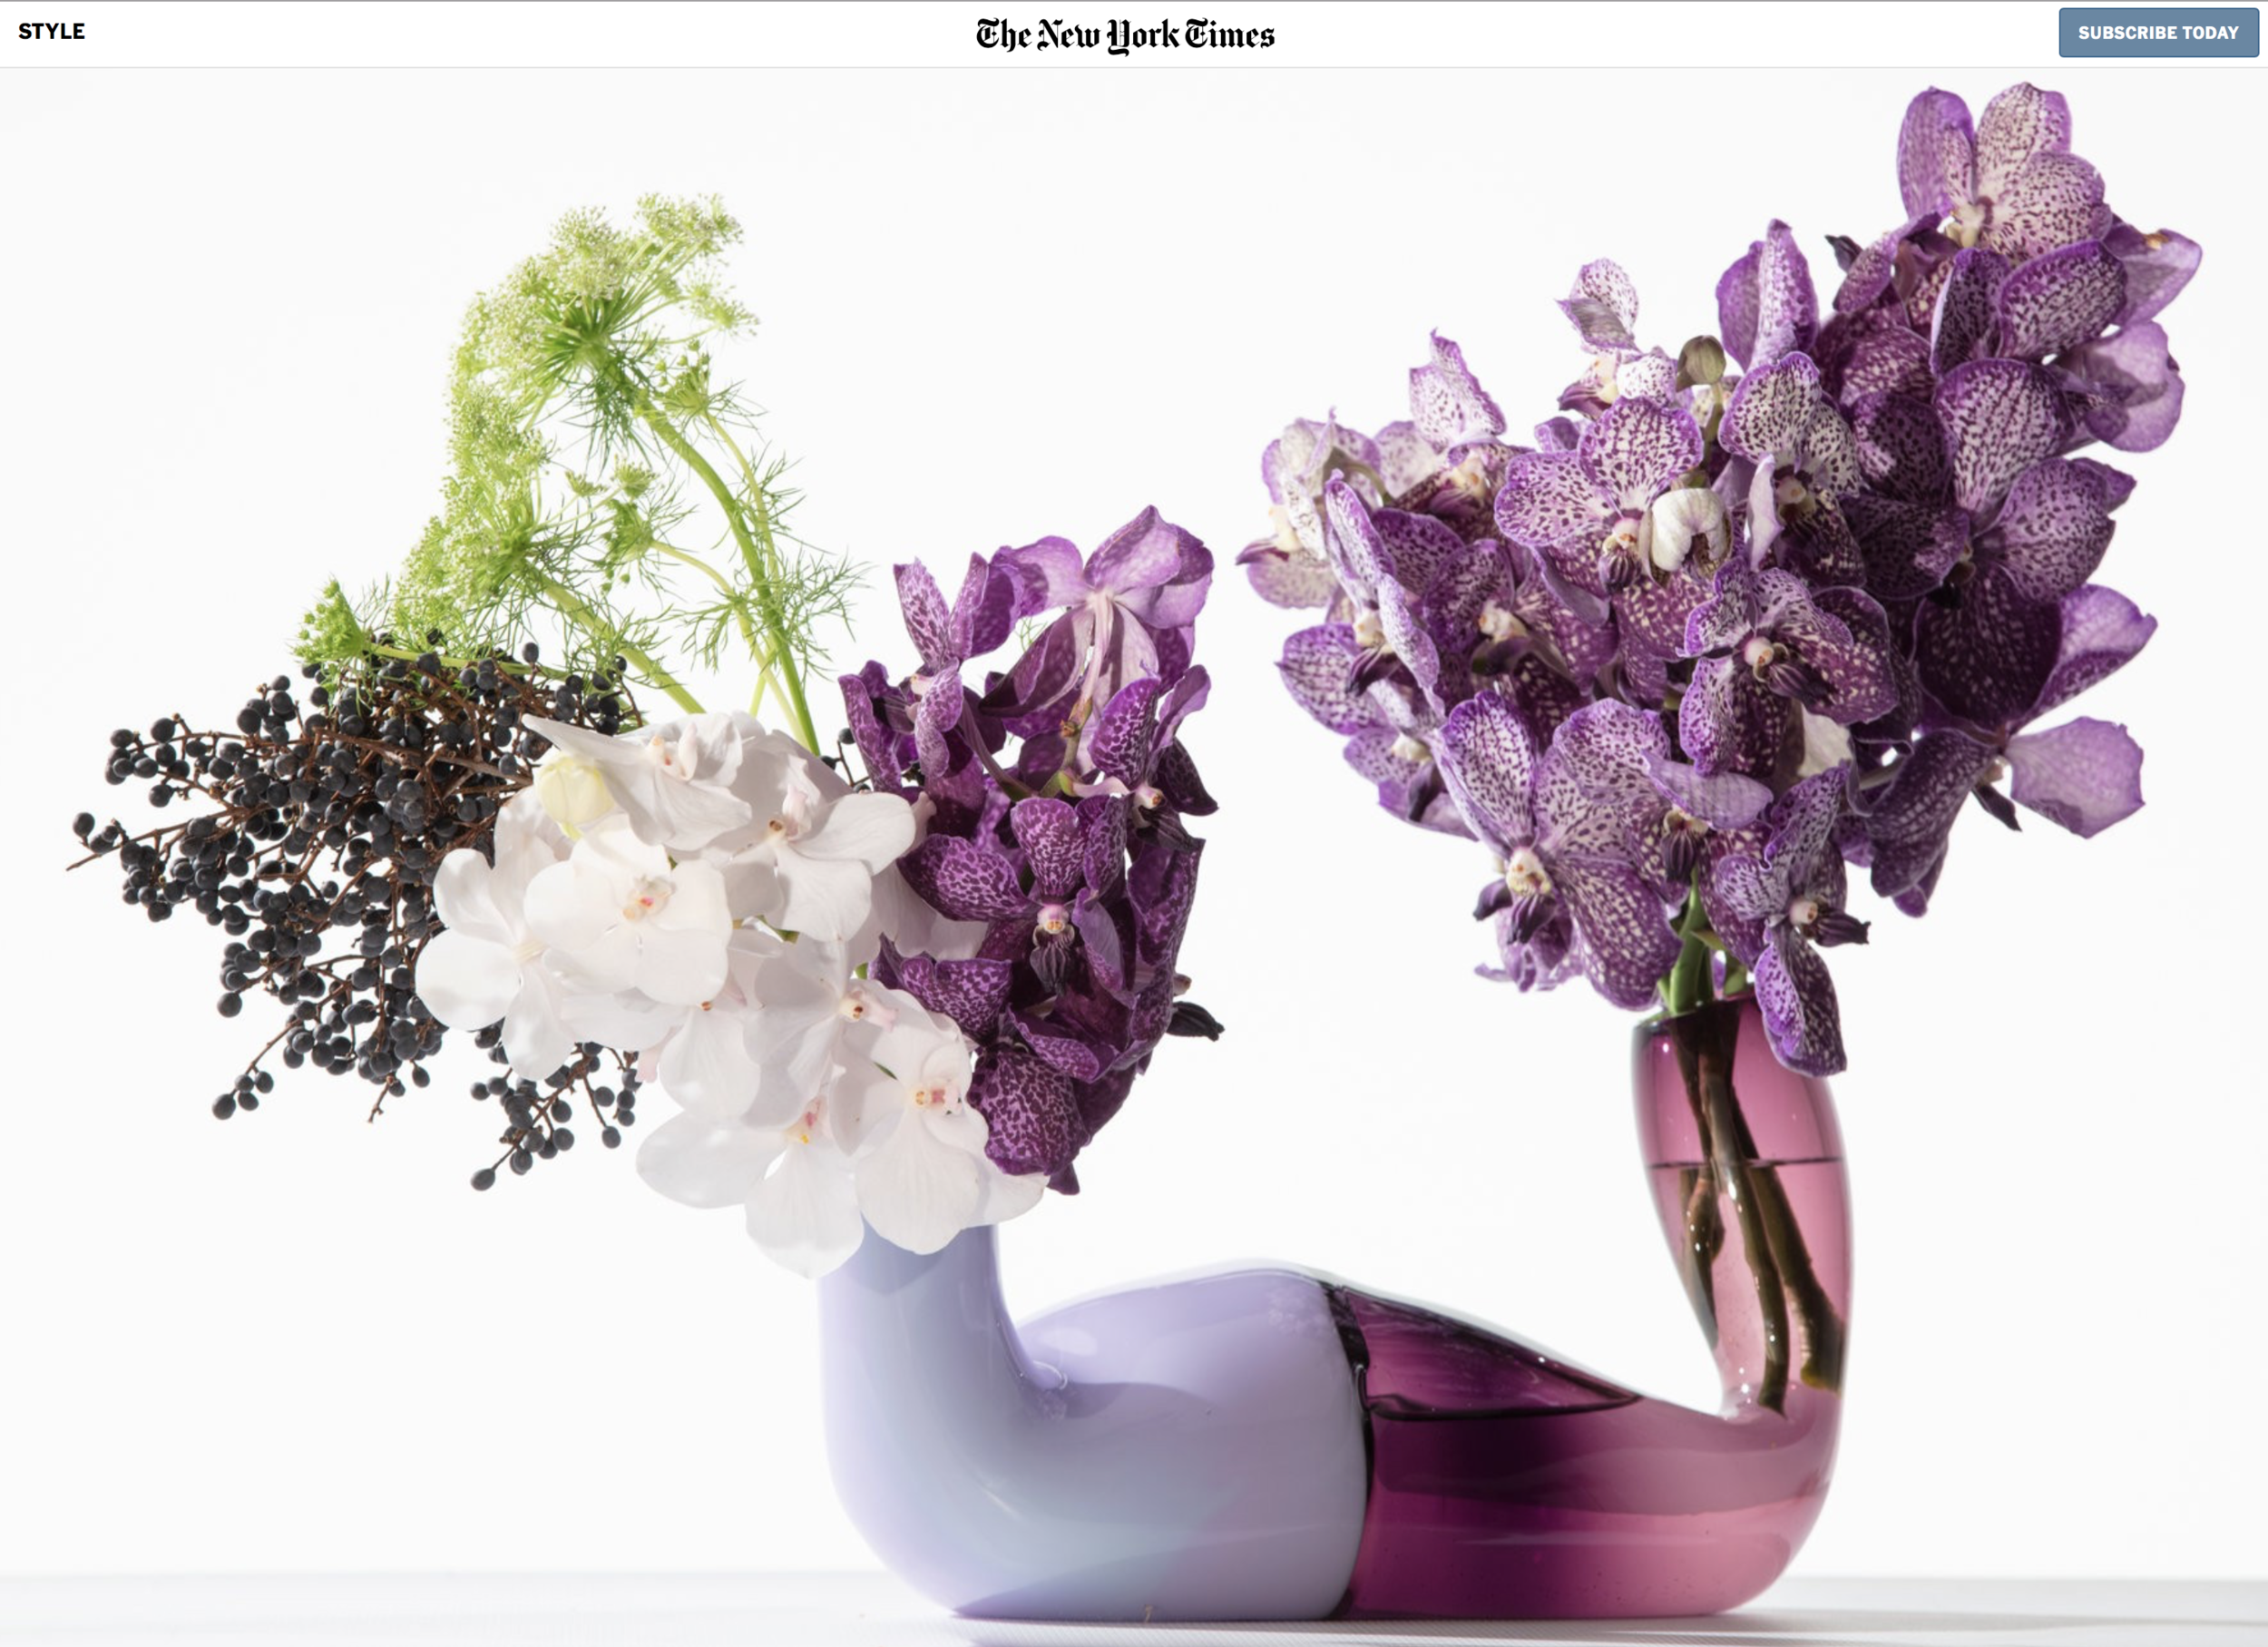 The Pushmepullme vase by Andi Kovel and Justin Parker of Esque Studio. On the purple side, dark purple Vanda diamond orchids. On the lavender side, white Vandas, with Queen Anne's lace and blackberries. $2,200; esque-studio.com.CreditTony Cenicola/The New York Times